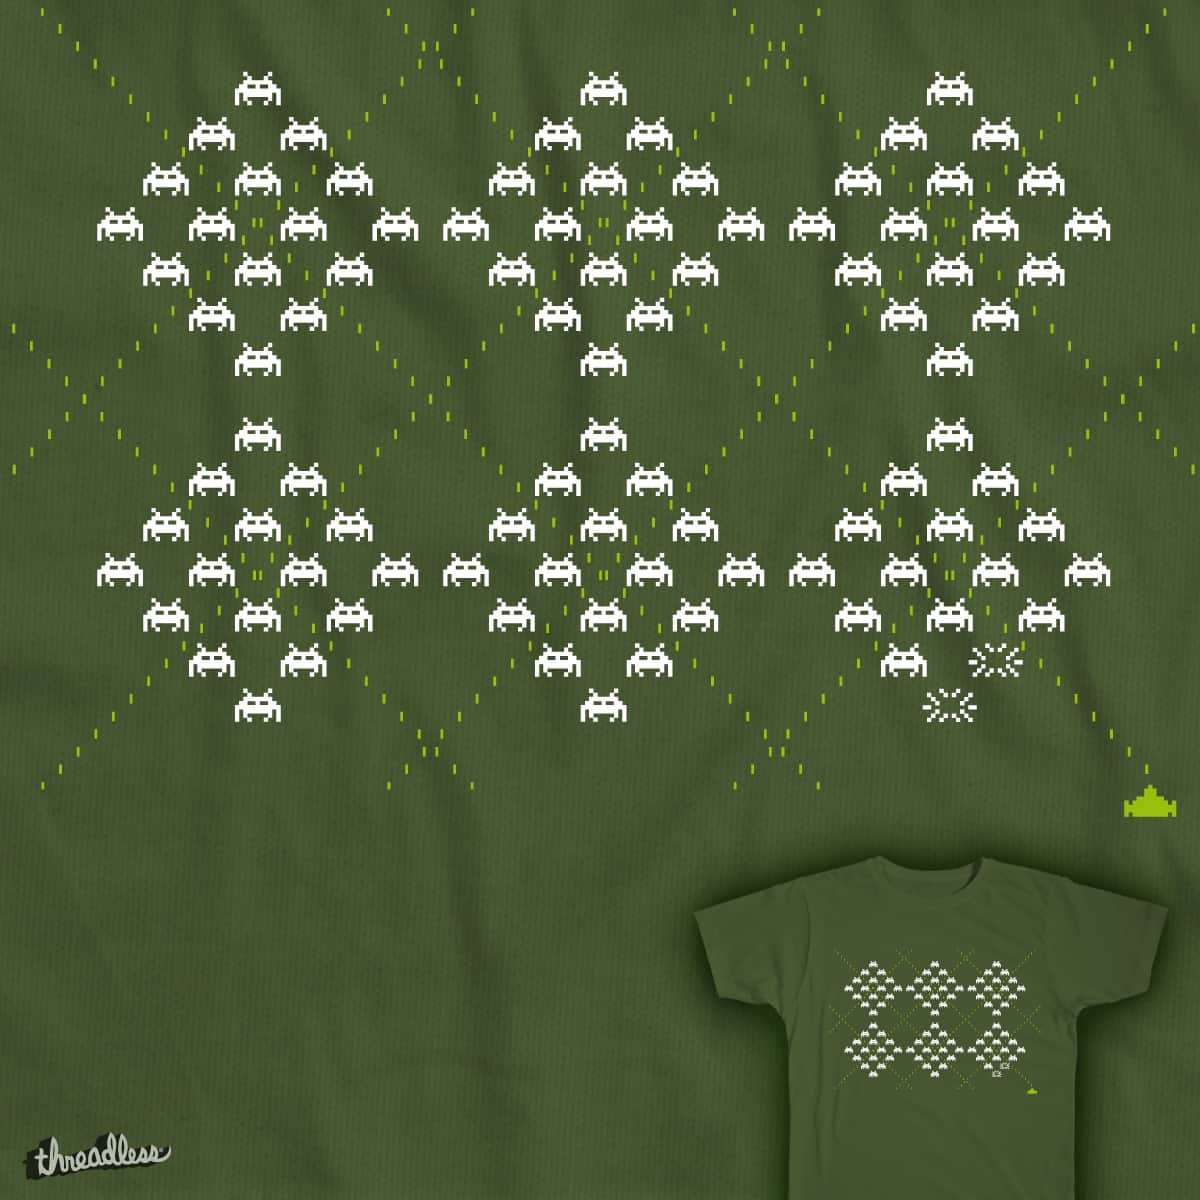 Argyle invasion by tawan on Threadless